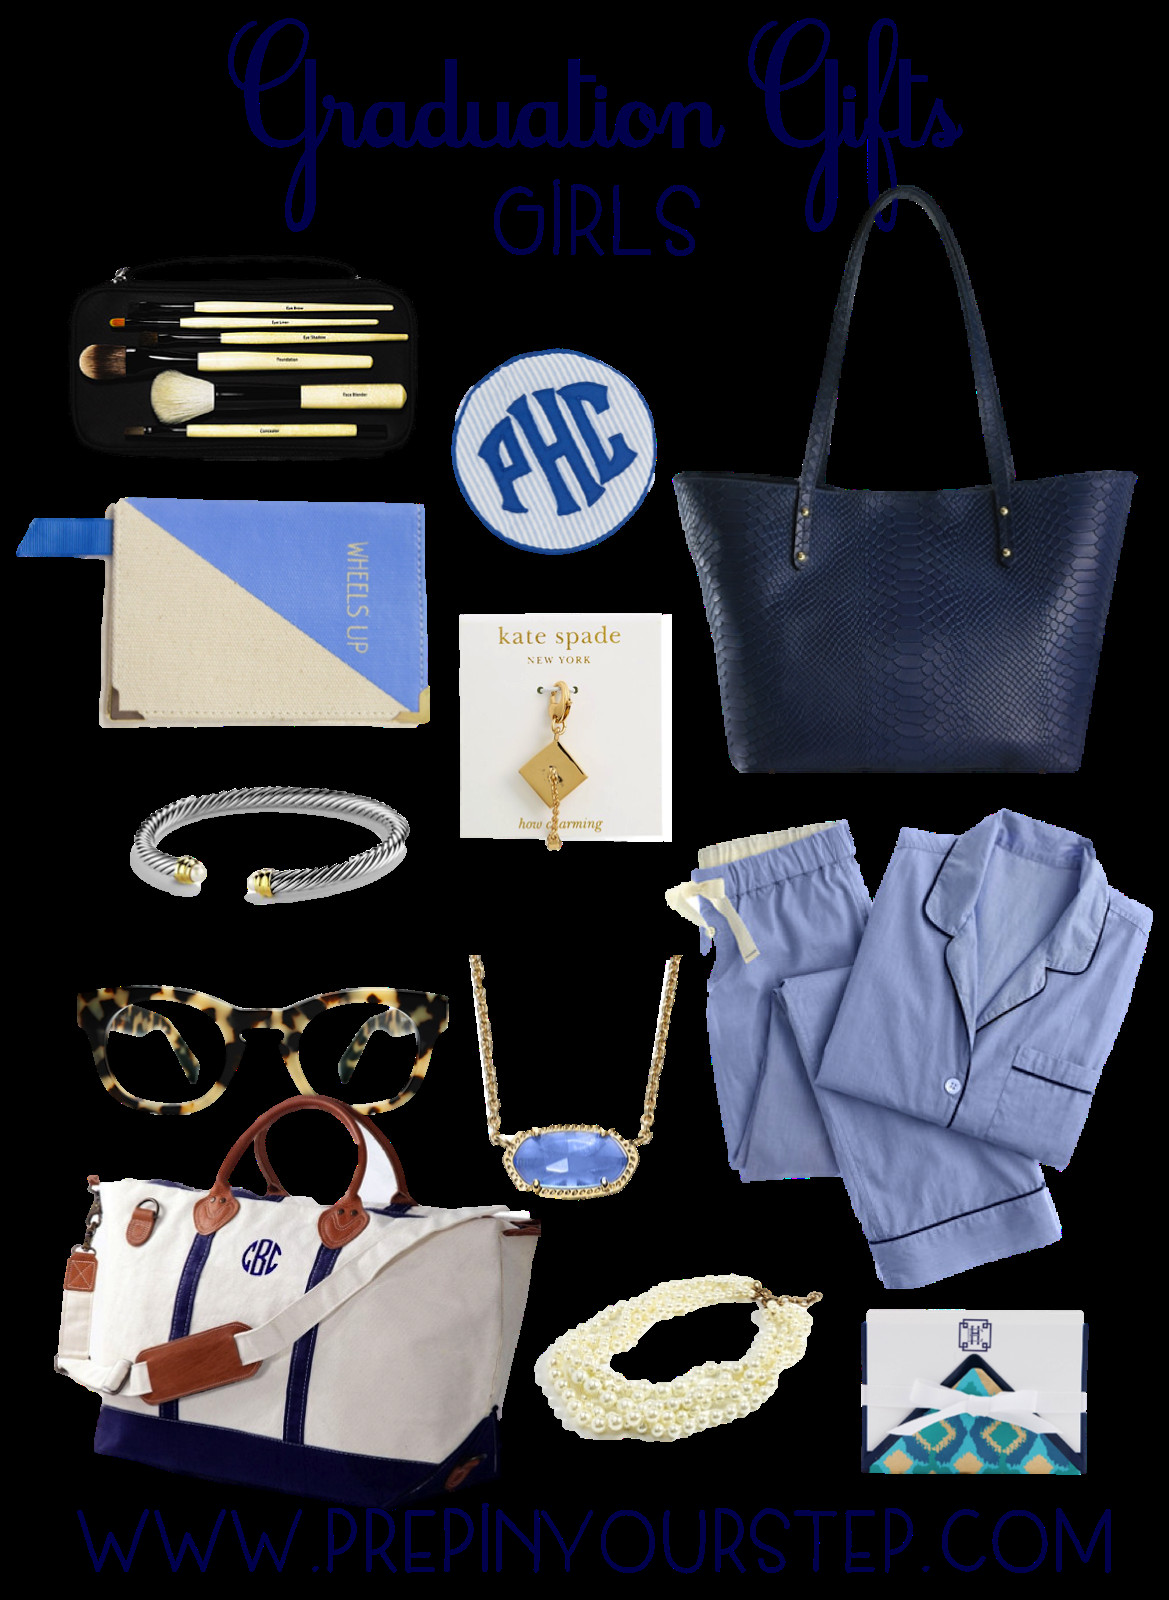 Best ideas about Girl Graduation Gift Ideas . Save or Pin Graduation Gift Ideas Guys & Girls The Monogrammed Life Now.